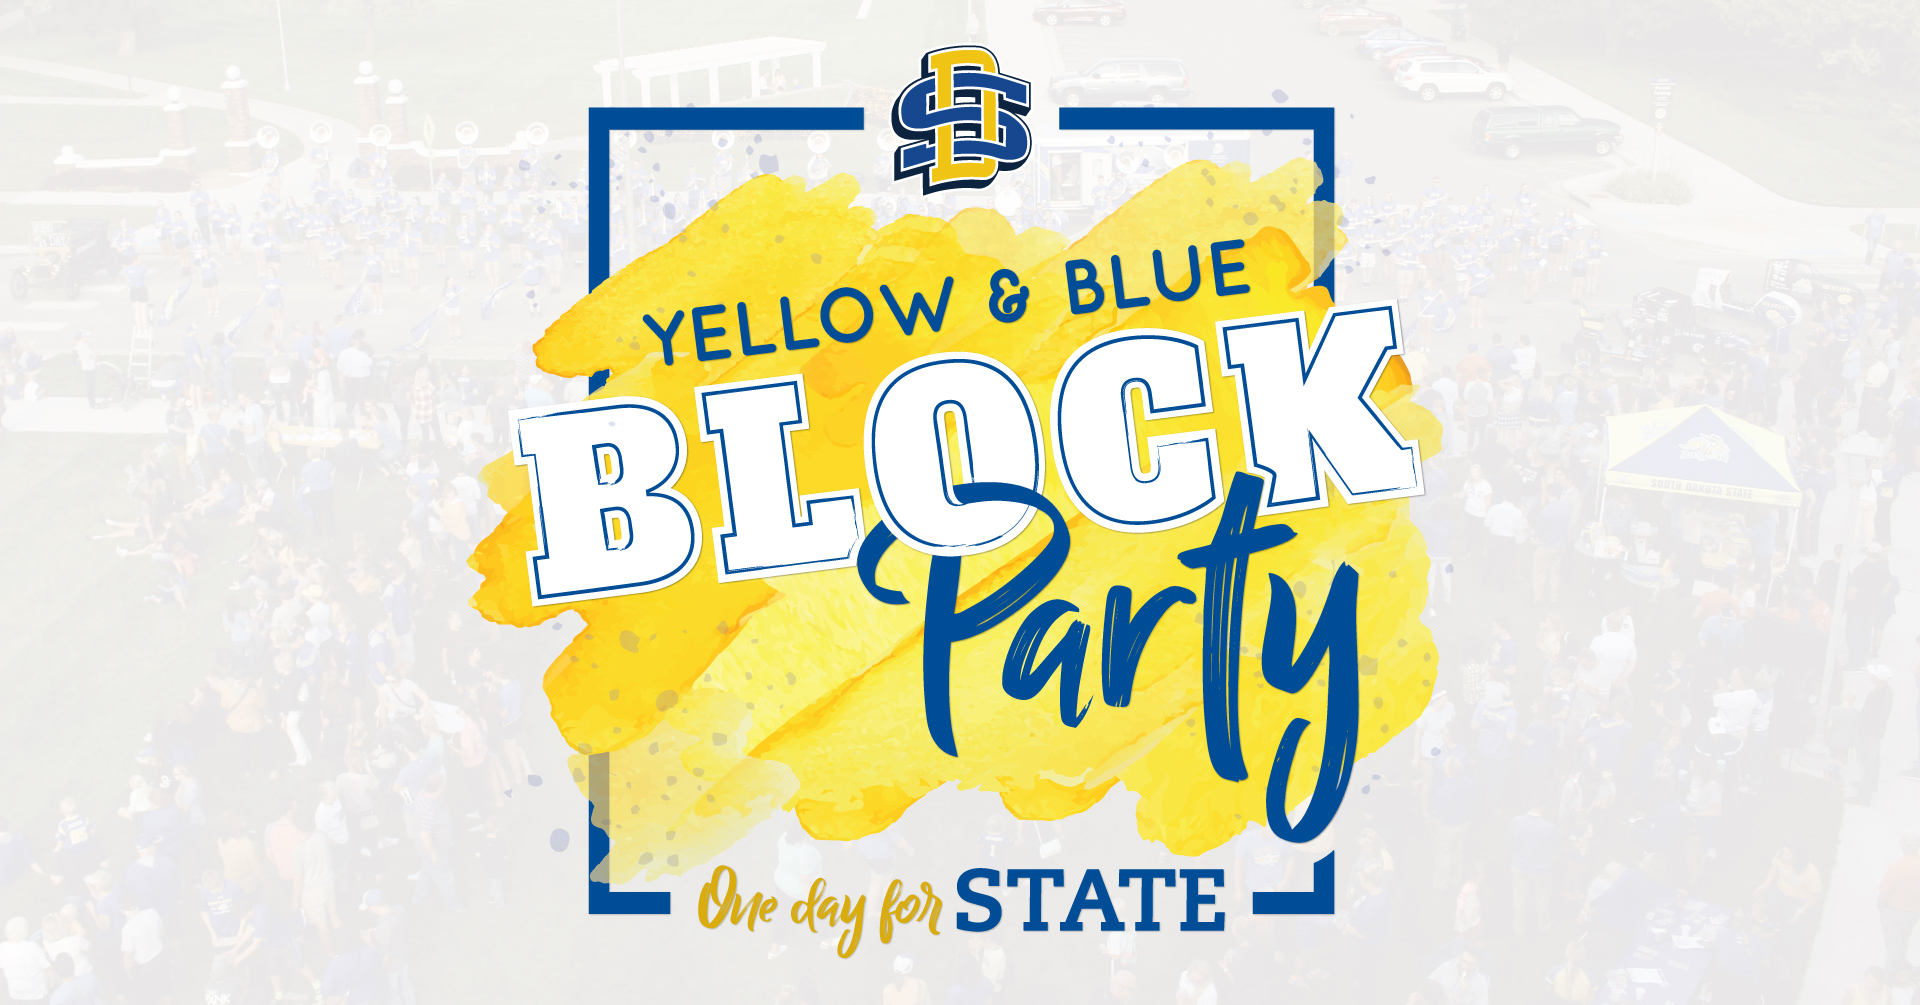 Yellow and Blue Block Party